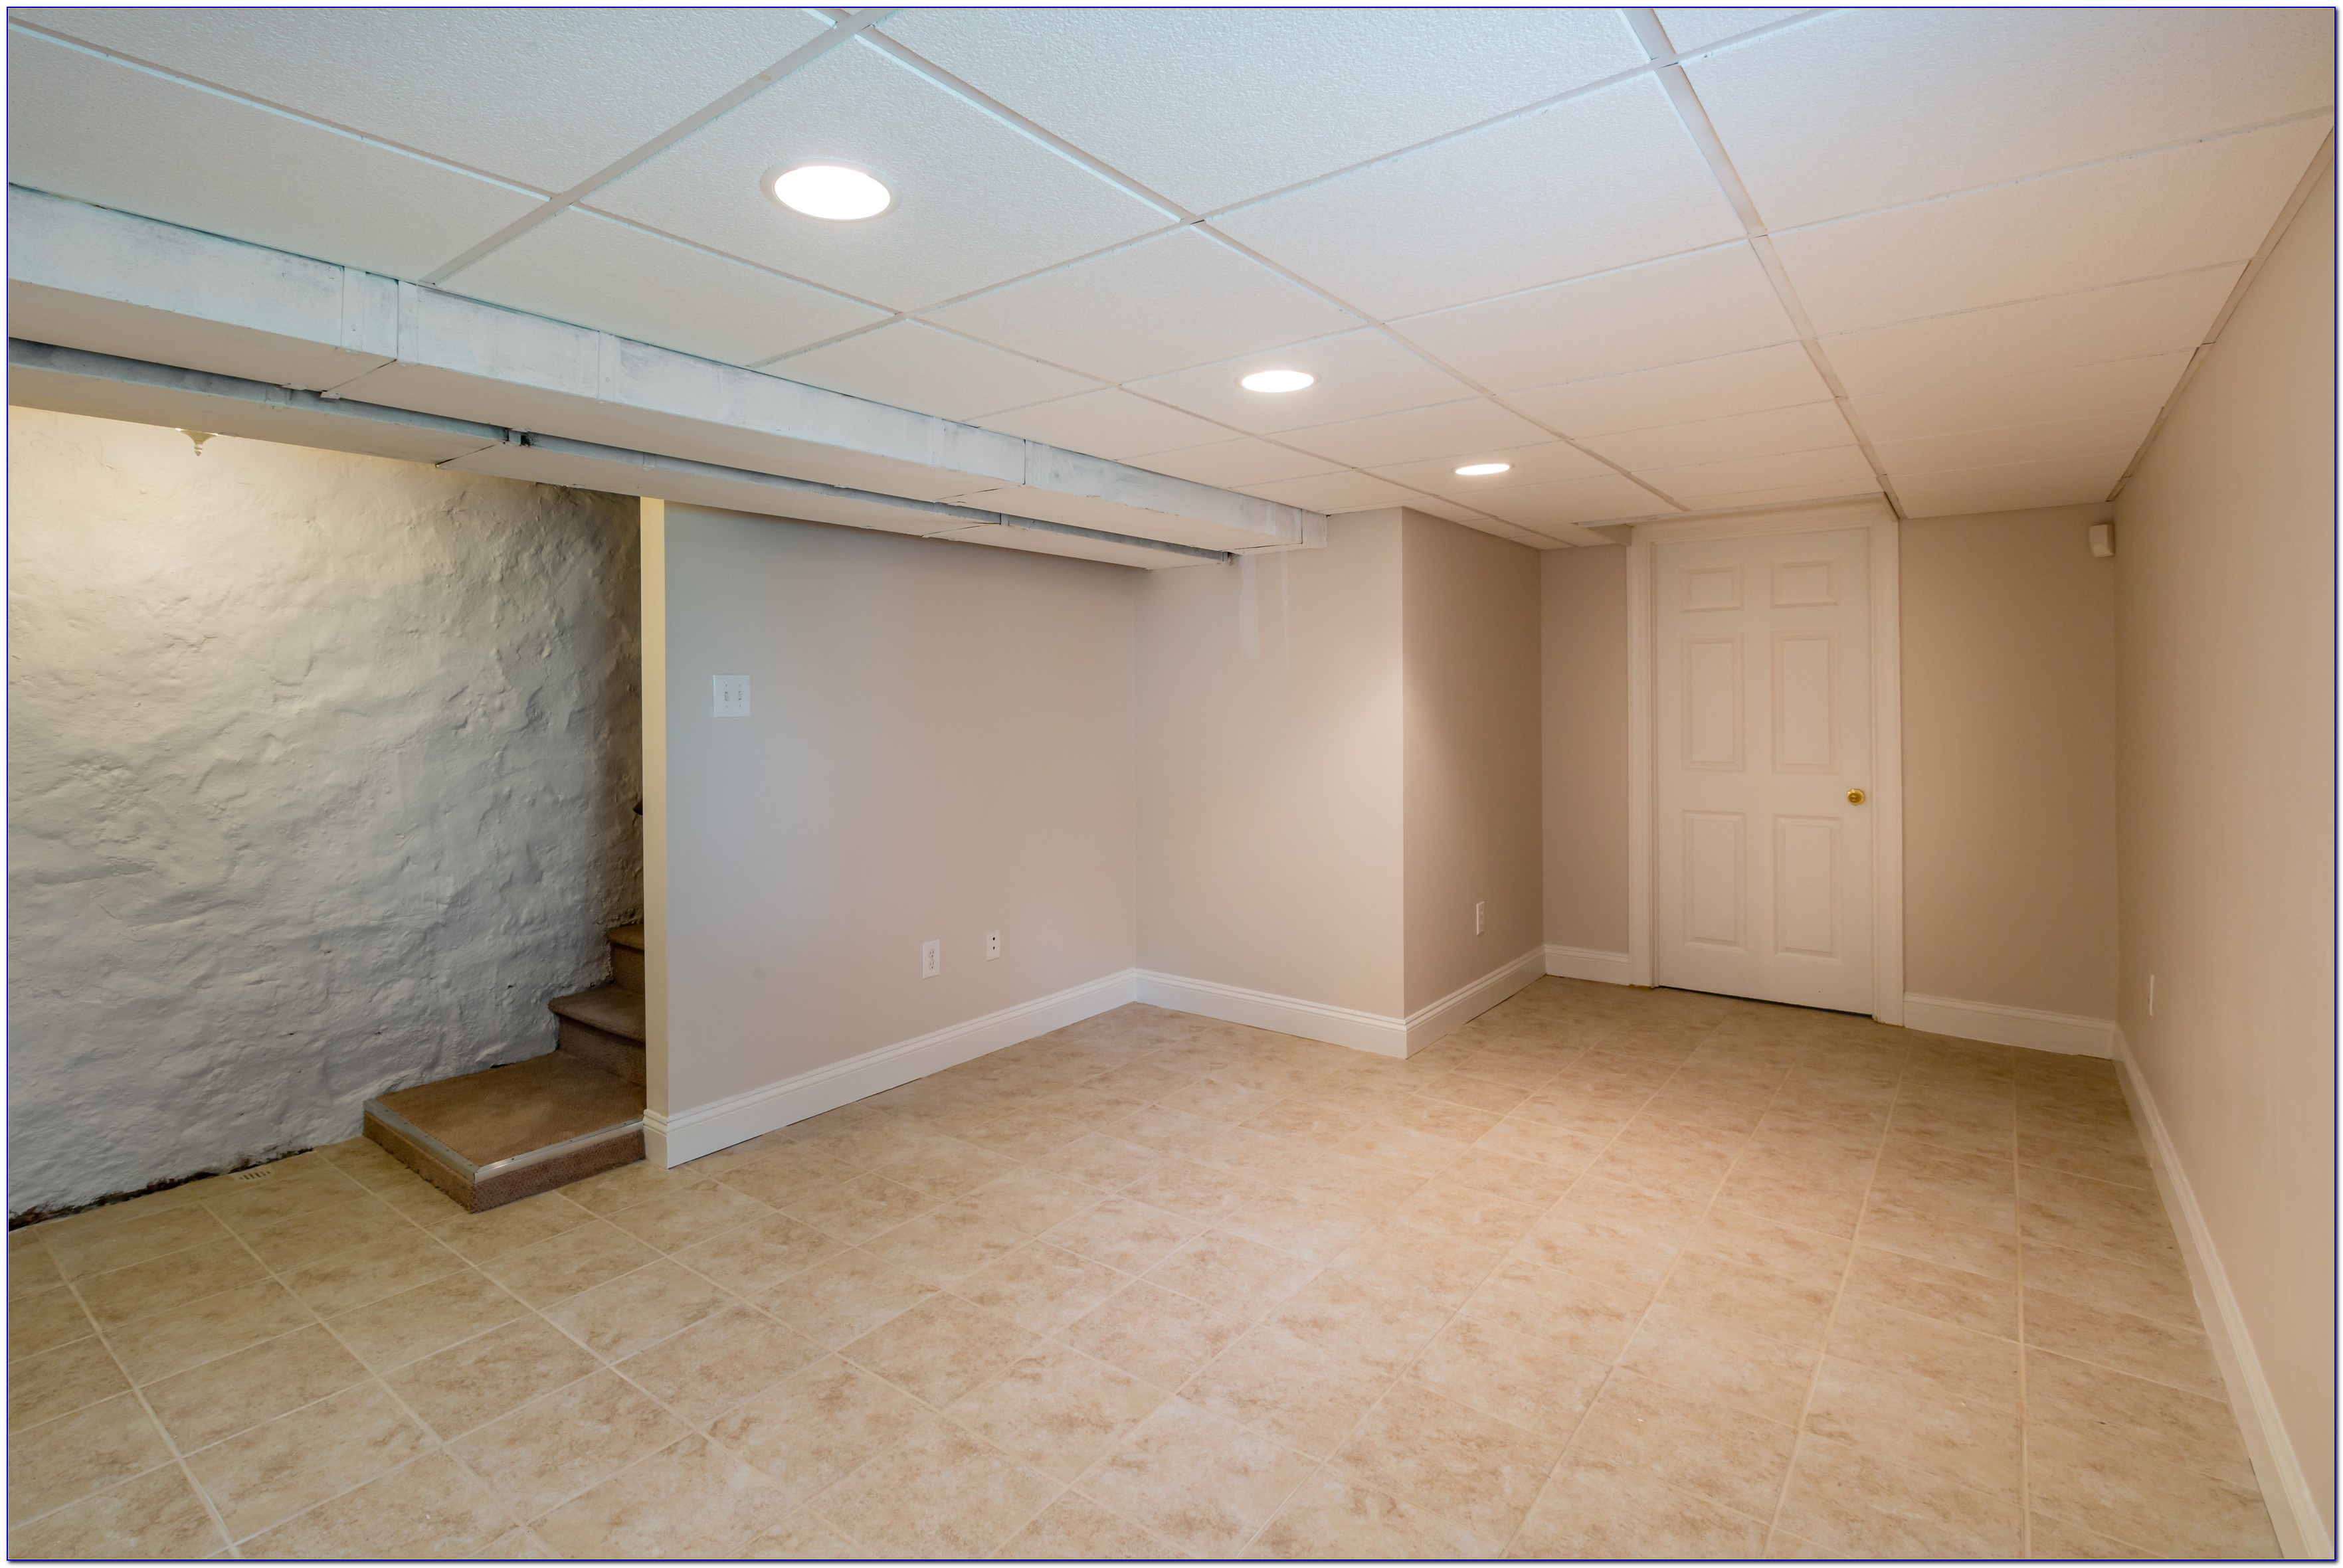 Ceiling Tiles For Basement With Acoustic